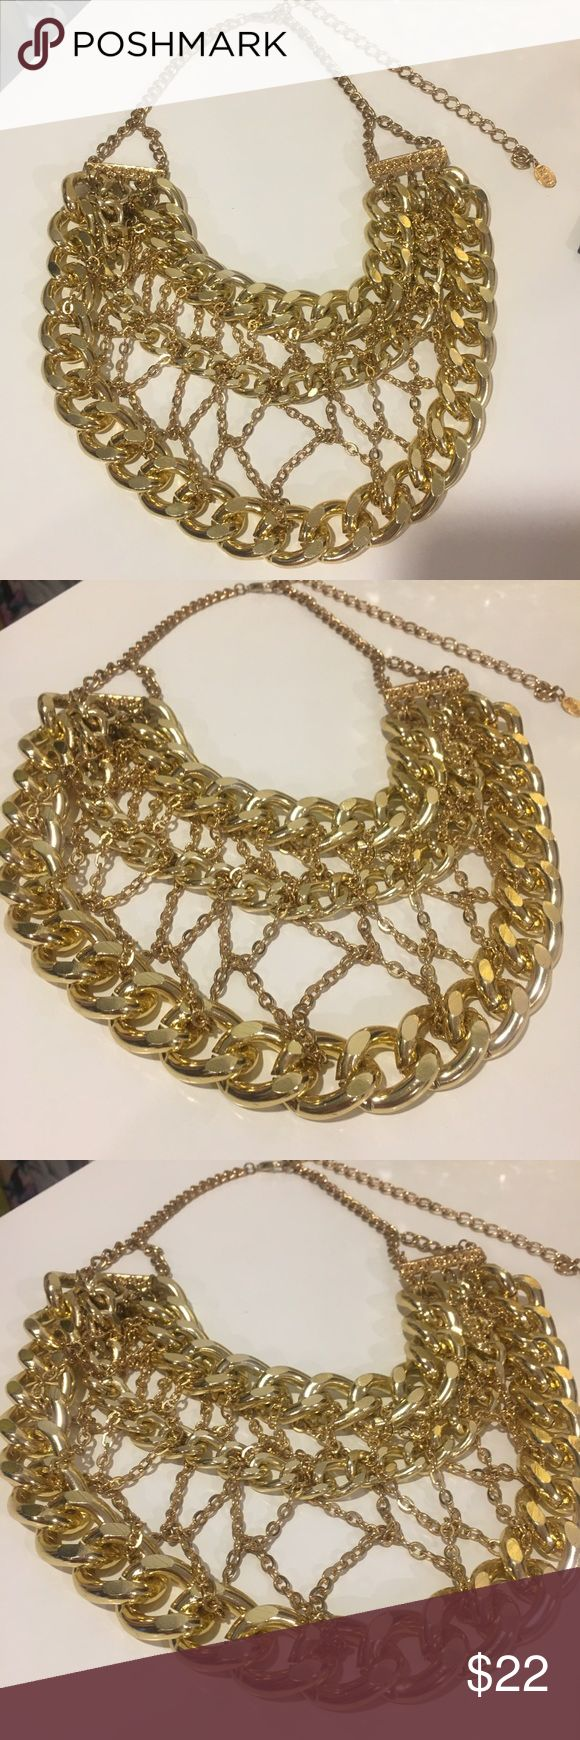 New oversized chunky gold necklace Eye catching necklace. This is a statement piece for sure! Jewelry Necklaces